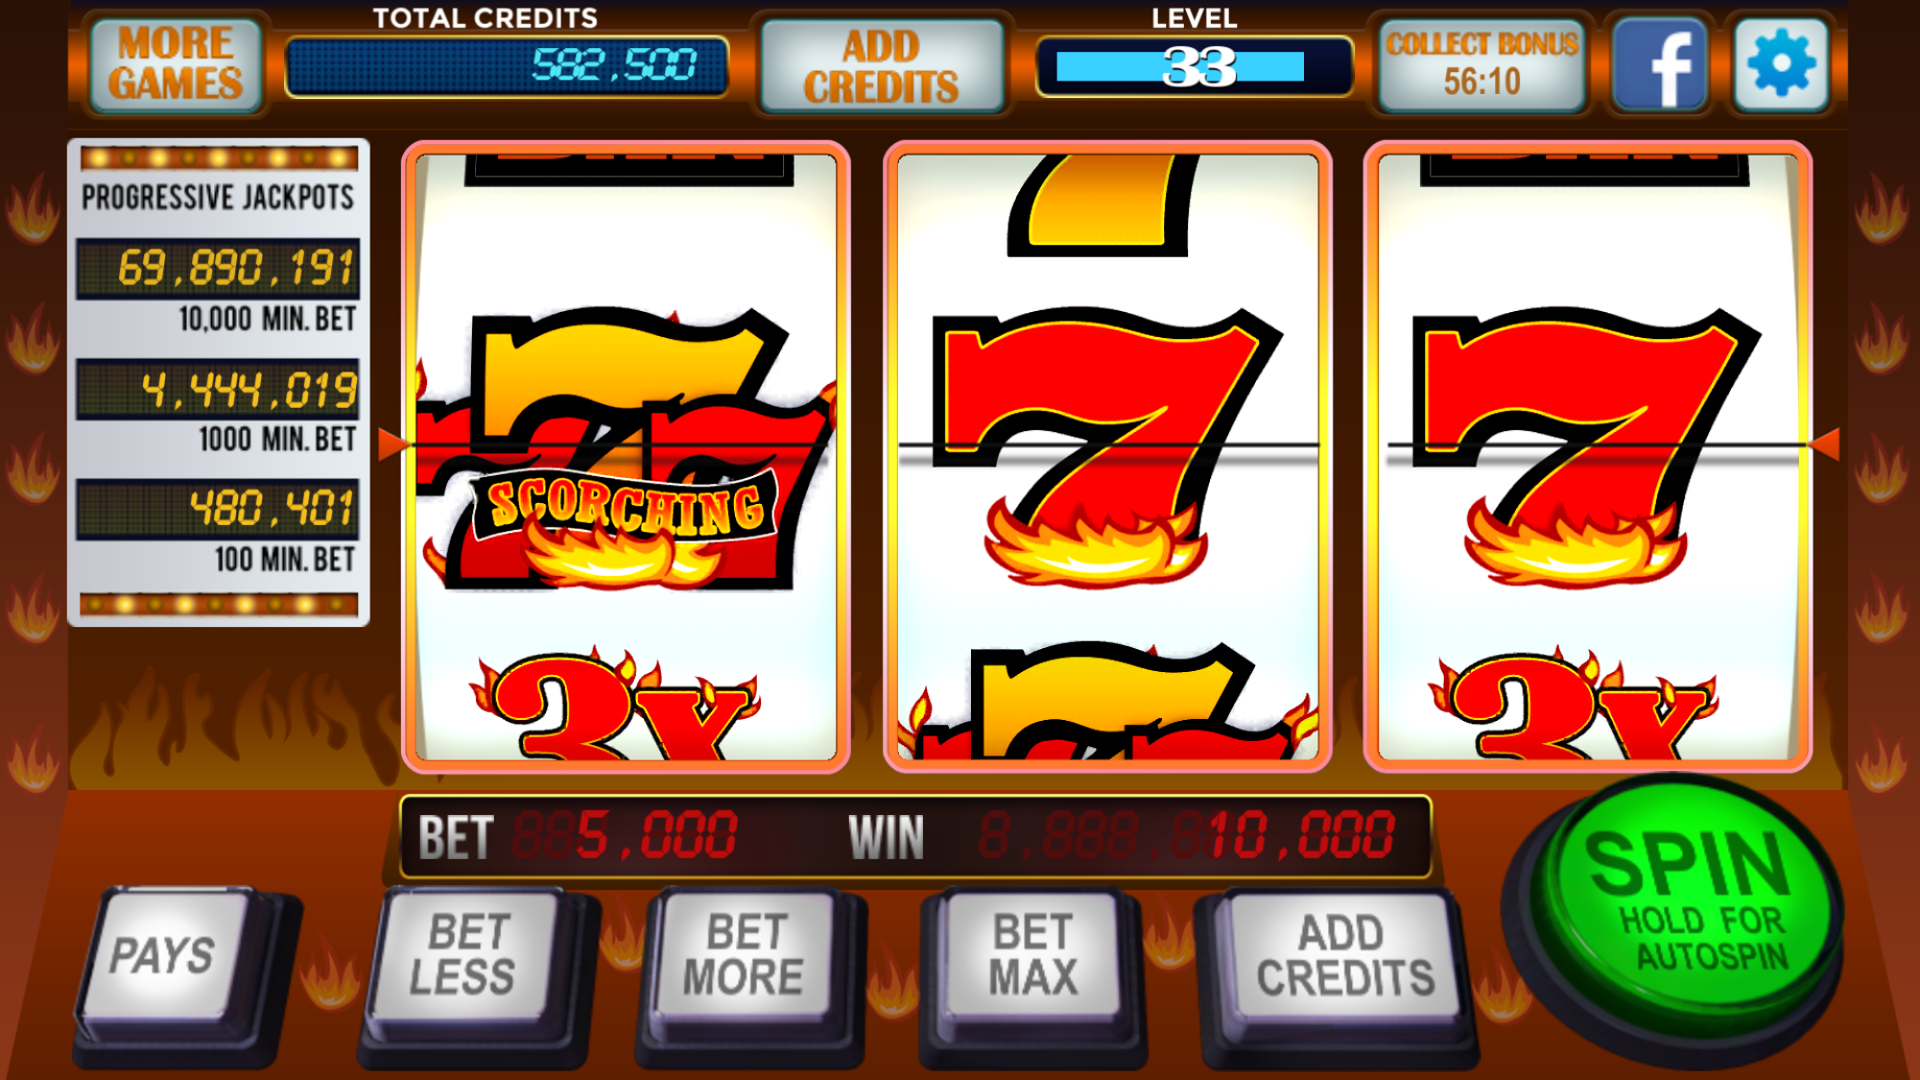 Slots machines neteller casino Brasil - 995707